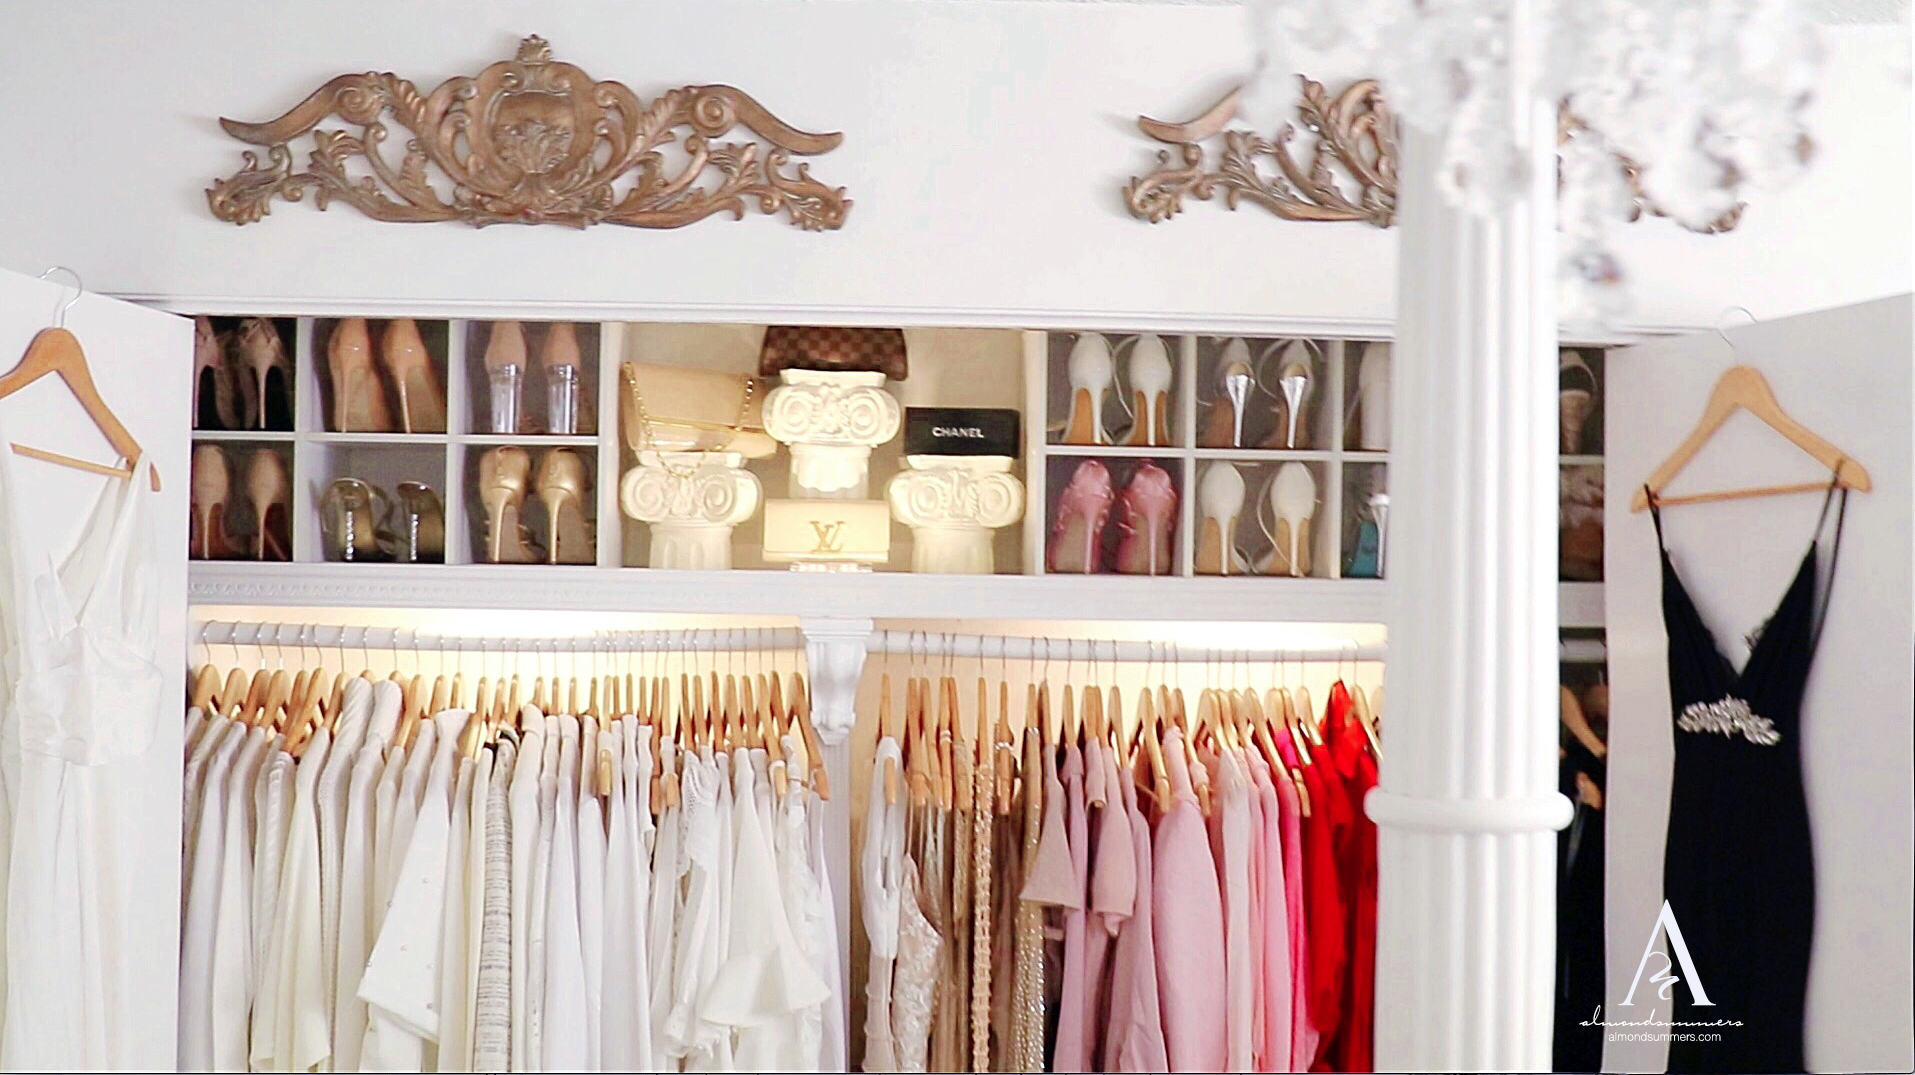 Closet Decorating Ideas | How To Decorate Your Closet | DIY Closet Organization | Organizing a Small Closet | Small closet organization ideas